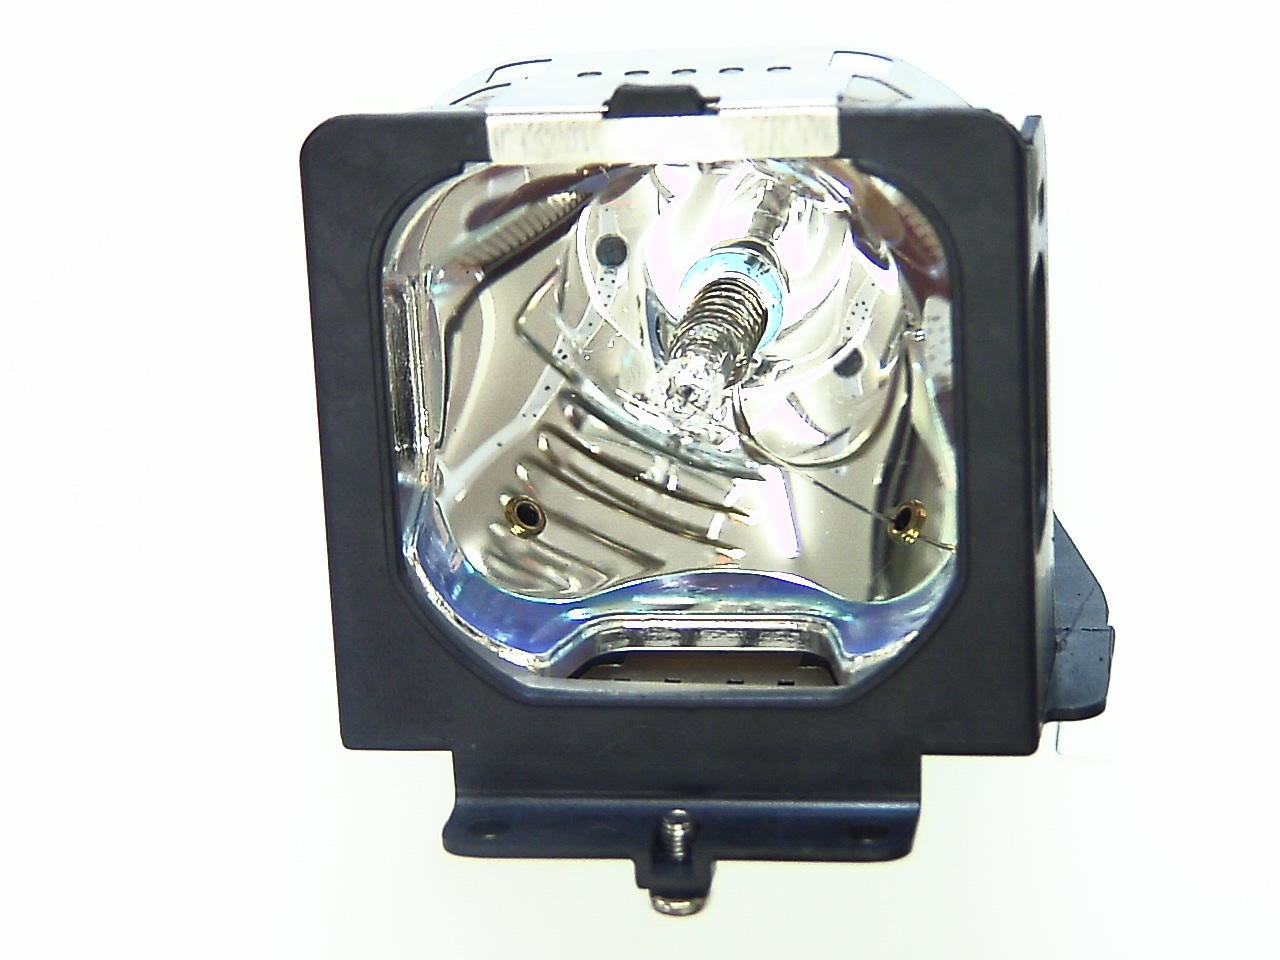 Diamond Lamps 610 334 9565-DL projector lamp